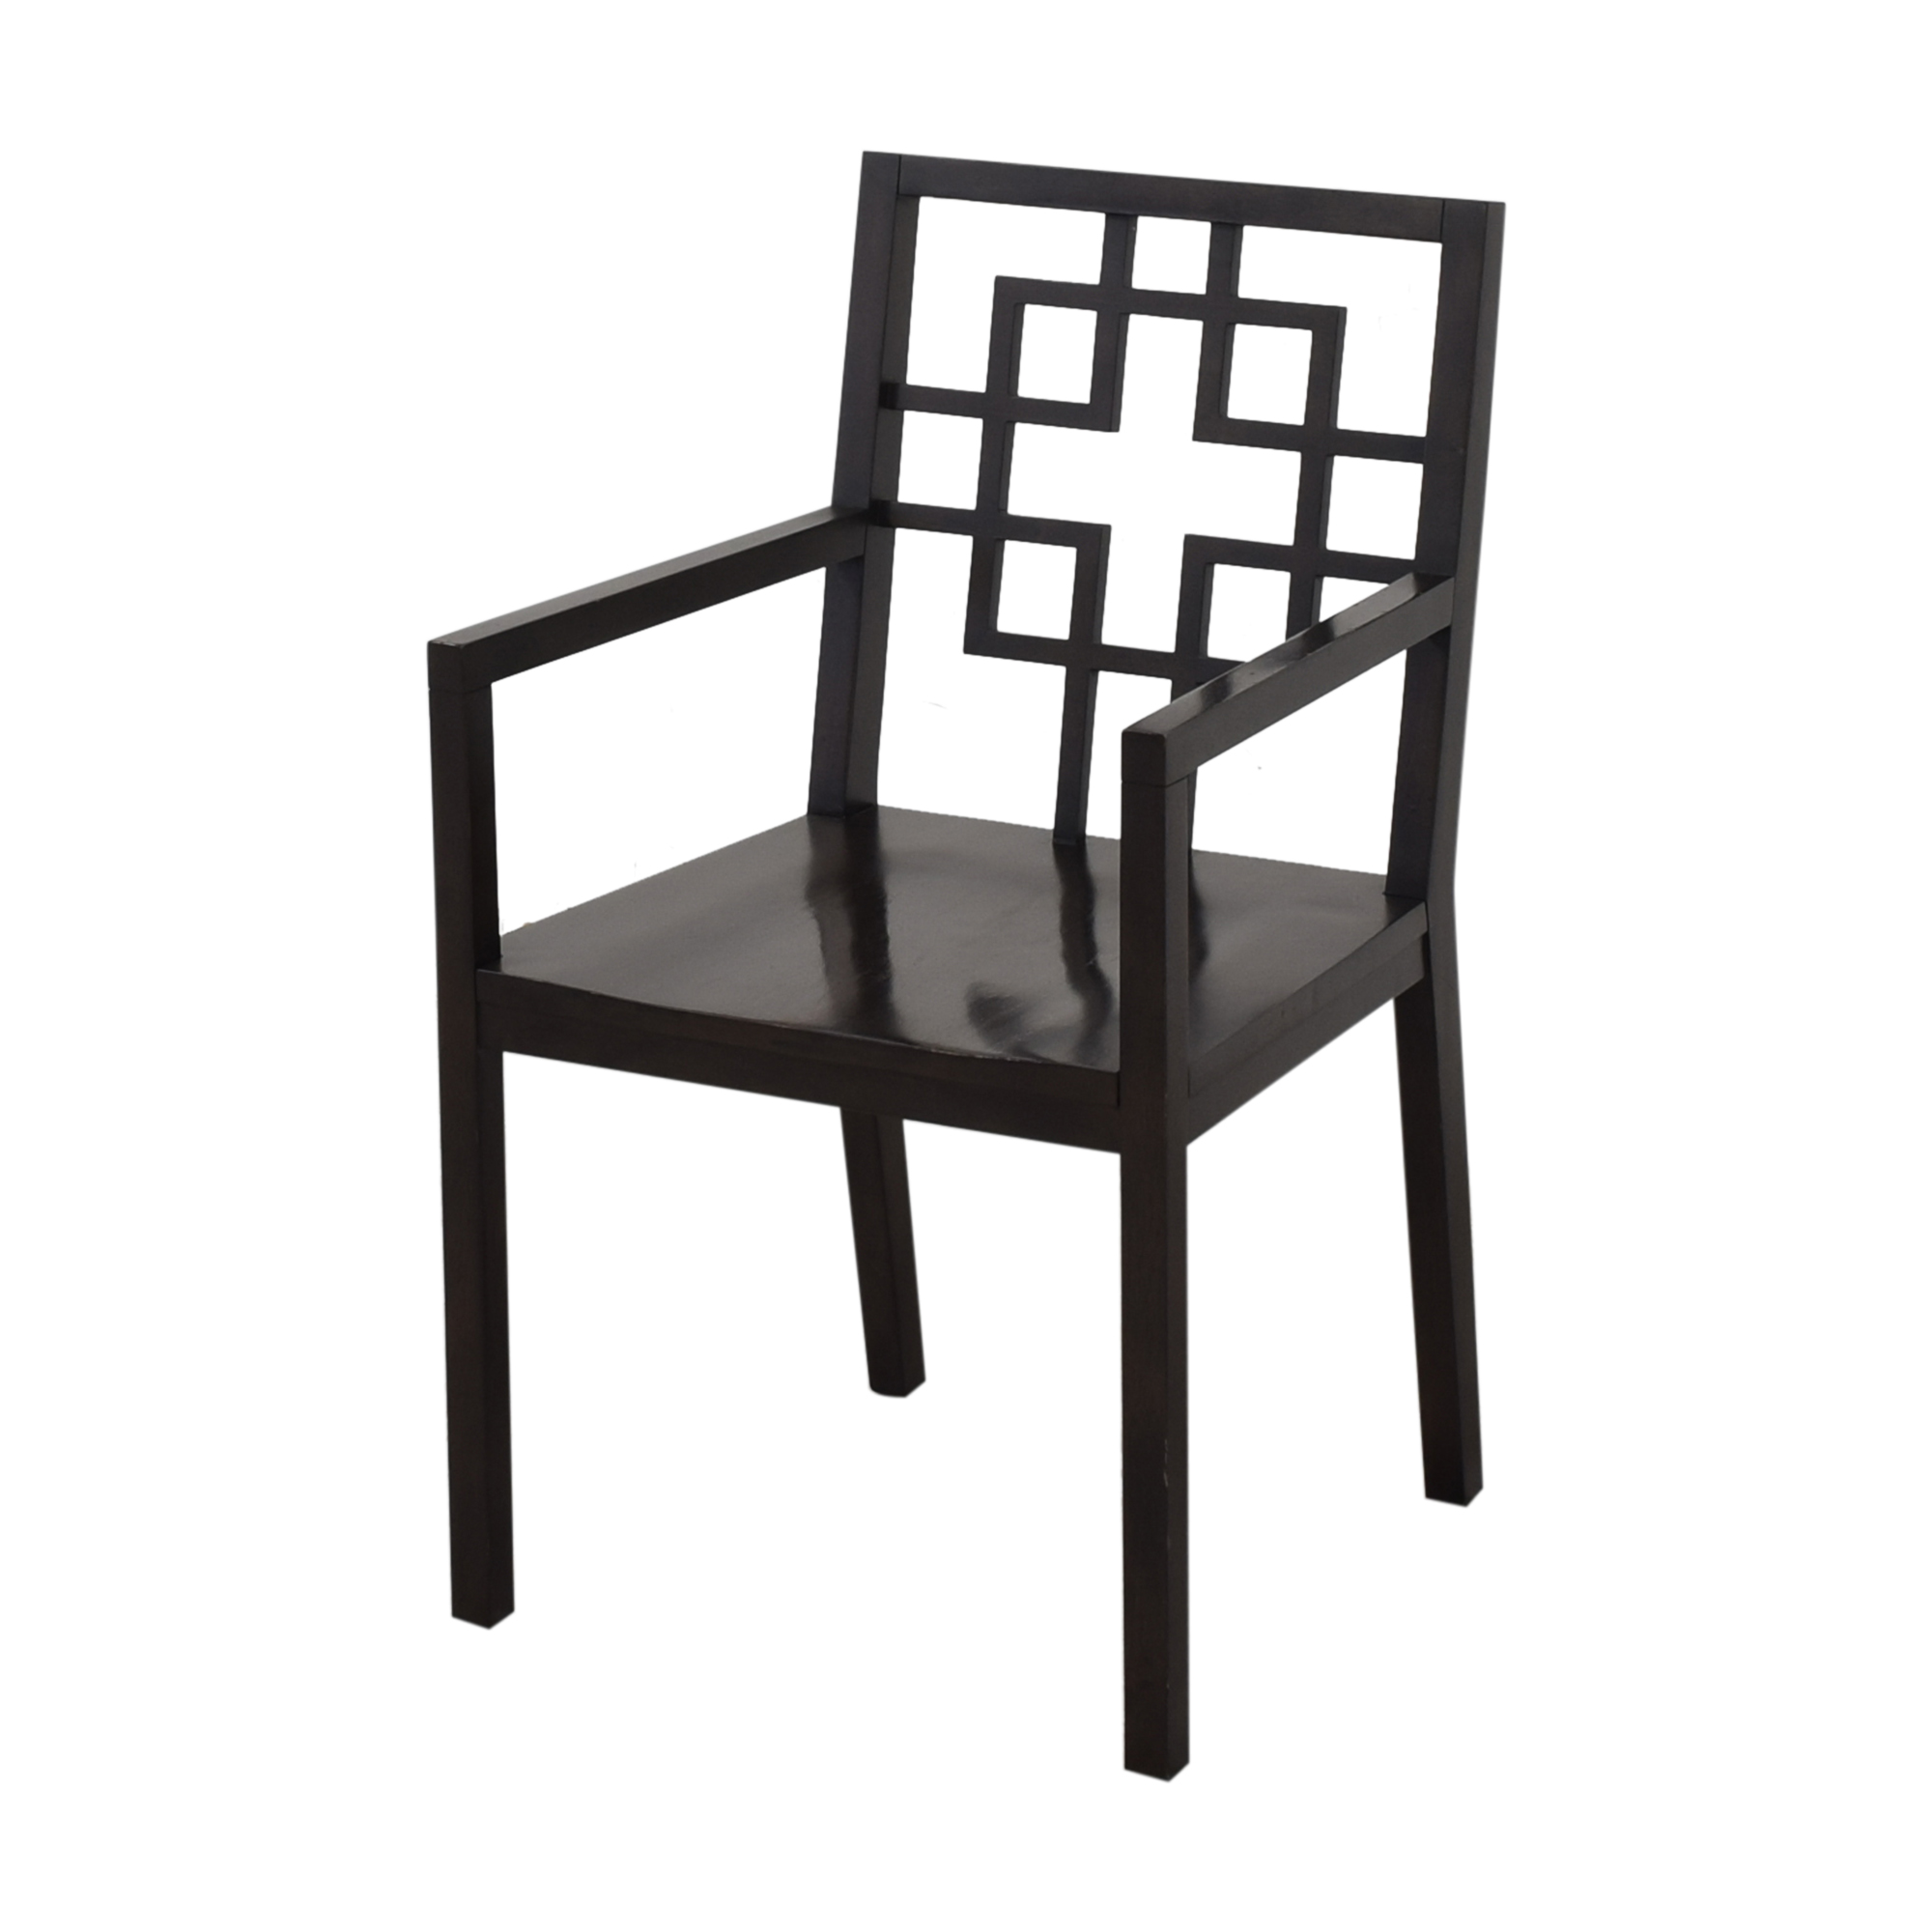 West Elm Overlapping Squares Dining Chairs / Chairs